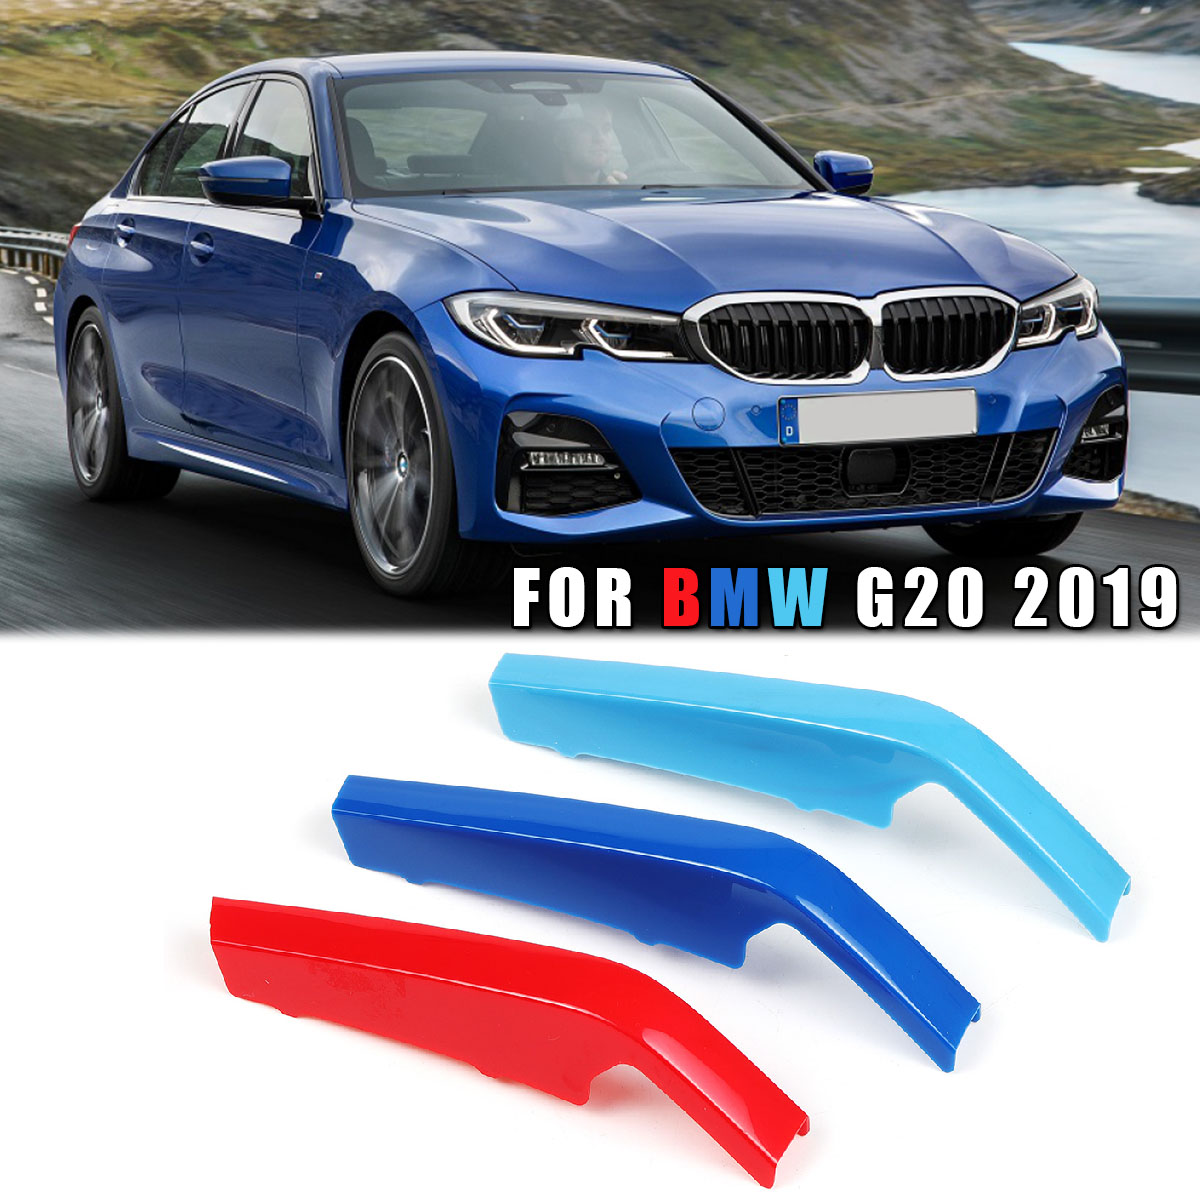 Front Grill Grille Cover Clip Trim M-Color 3 Colors For BMW 3-series G20 2019